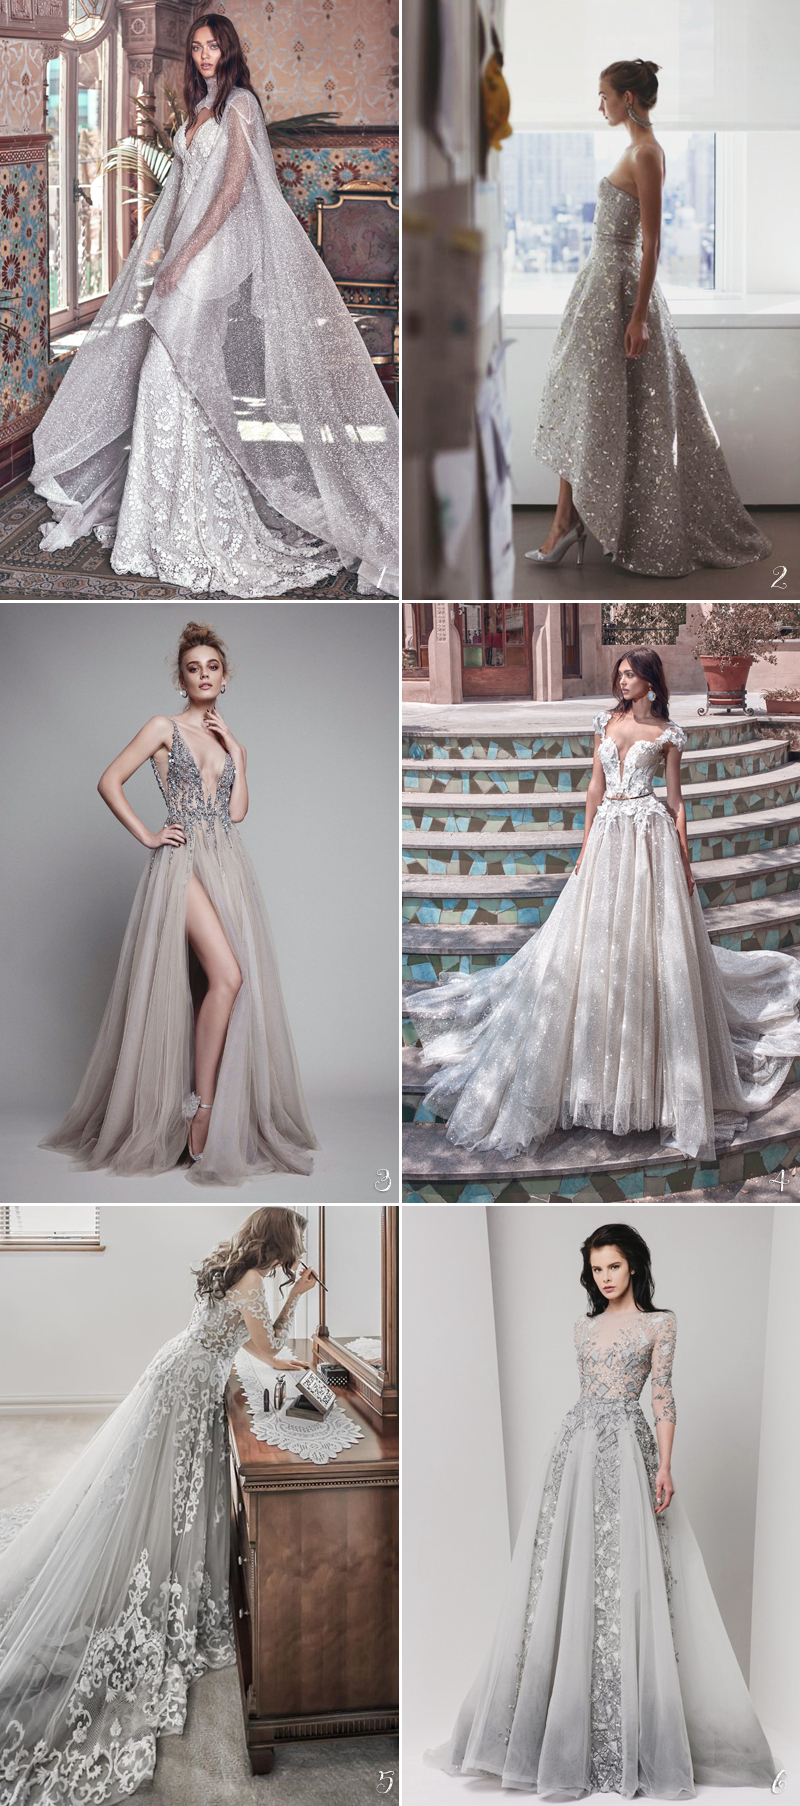 Strikingly Charming Wedding Dresses With Beautiful Color